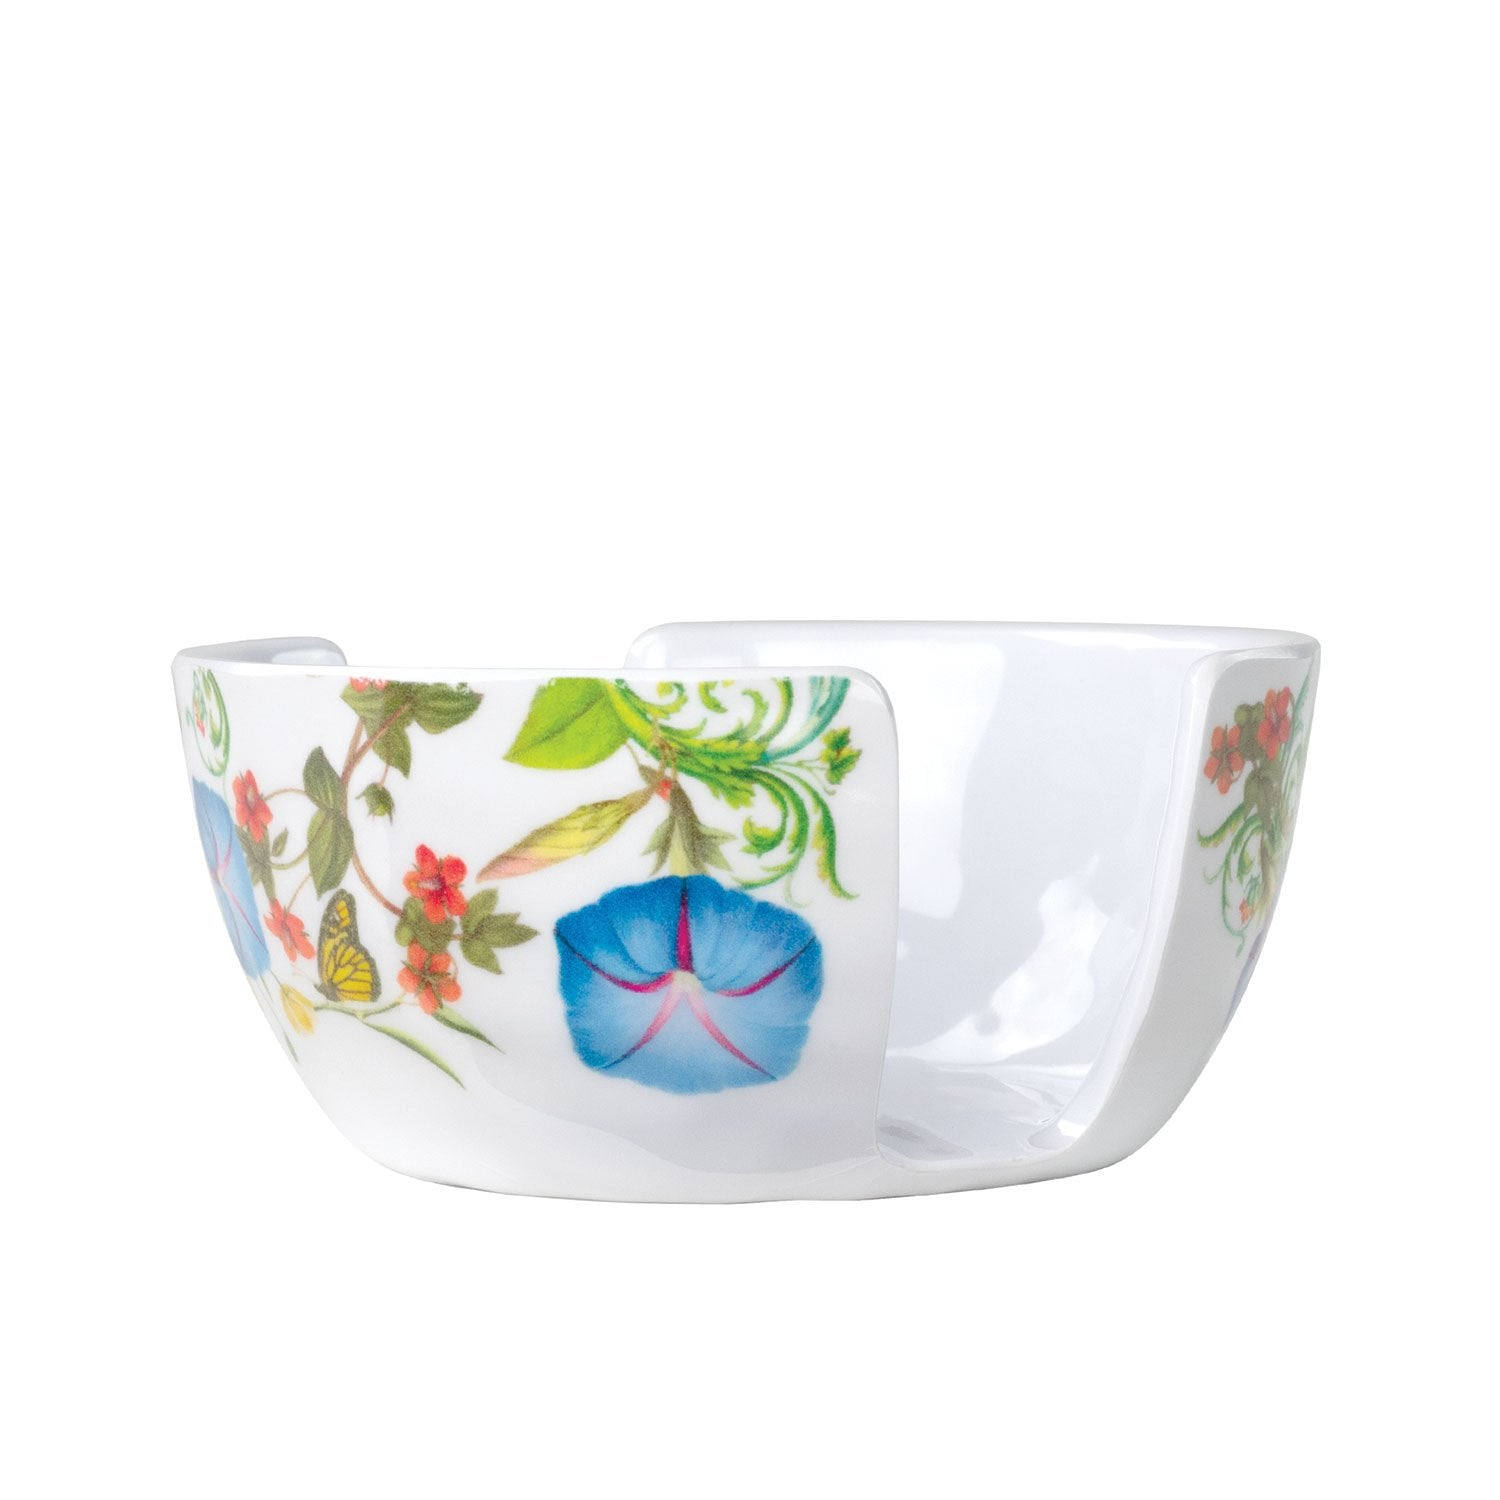 Summer Days Melamine Serveware Sponge Holder